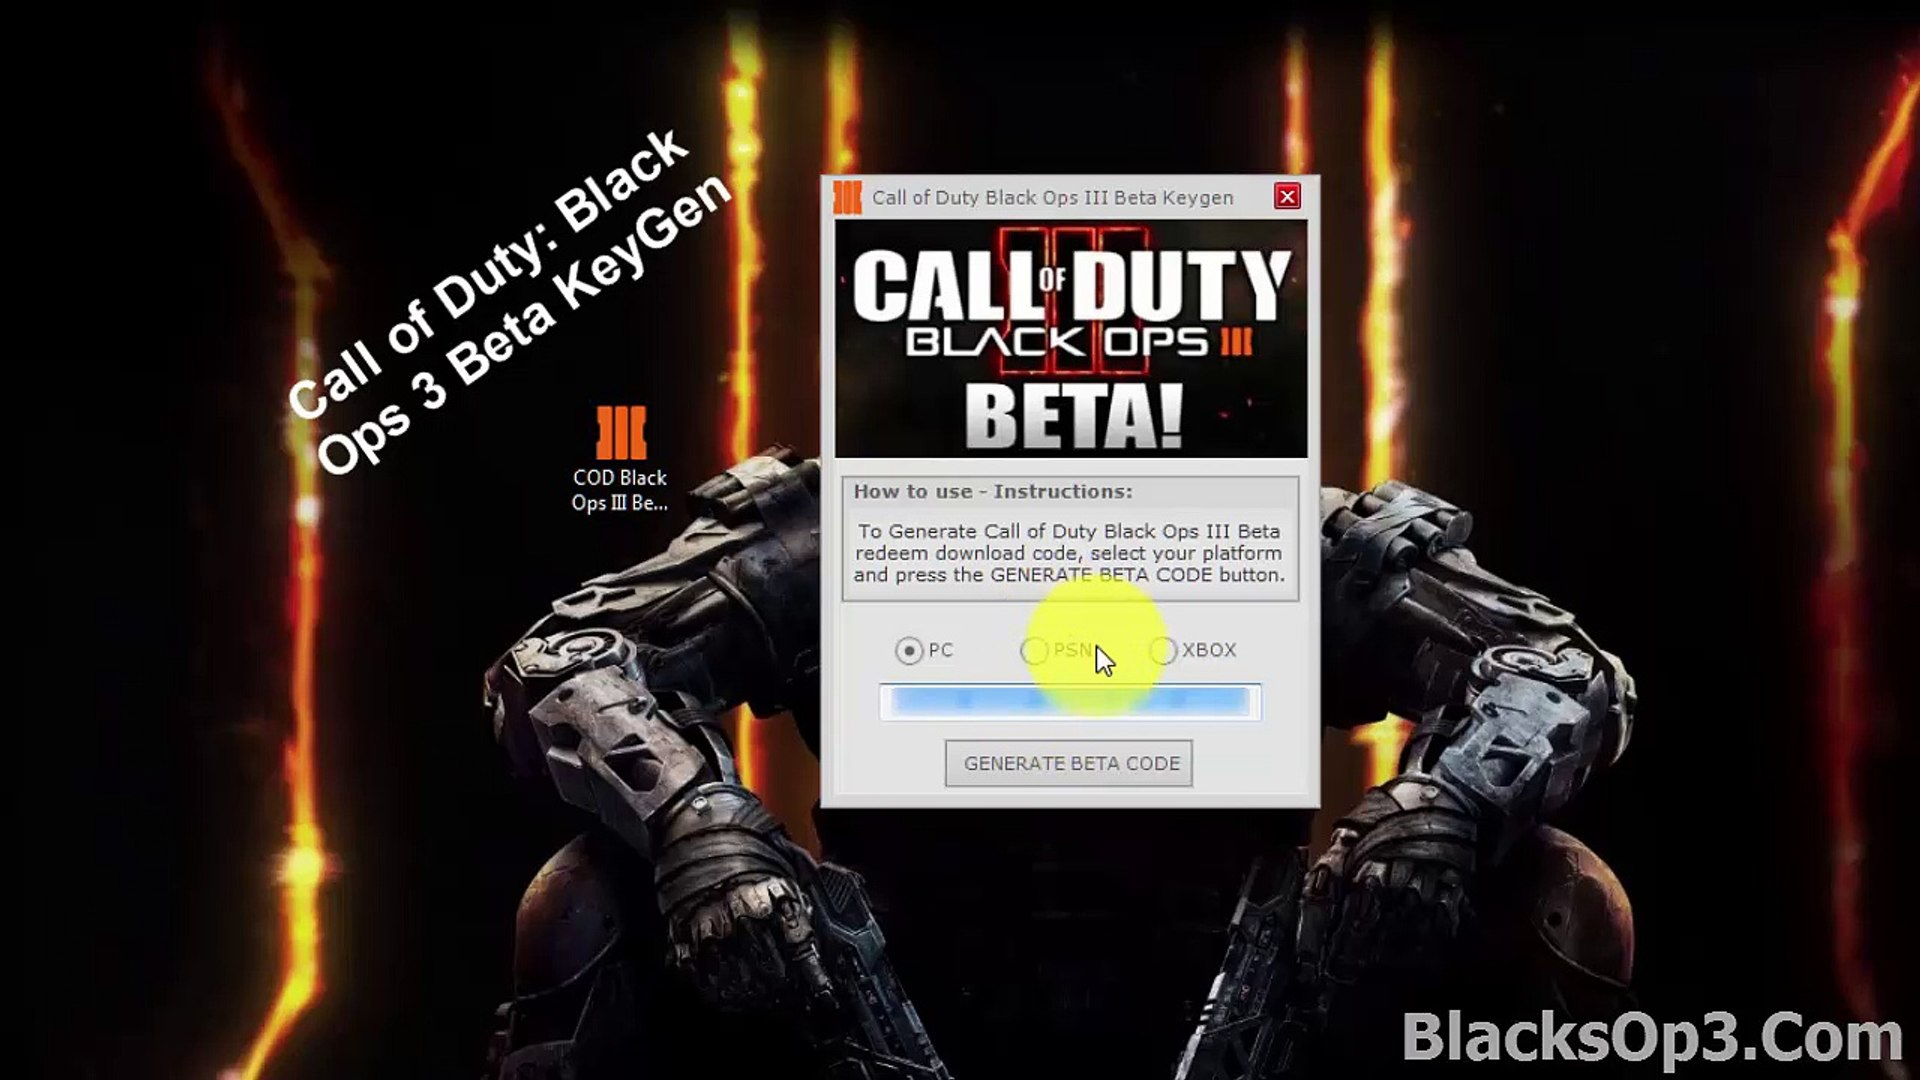 Call of Duty Black Ops III Beta Code Generator FrEe Download